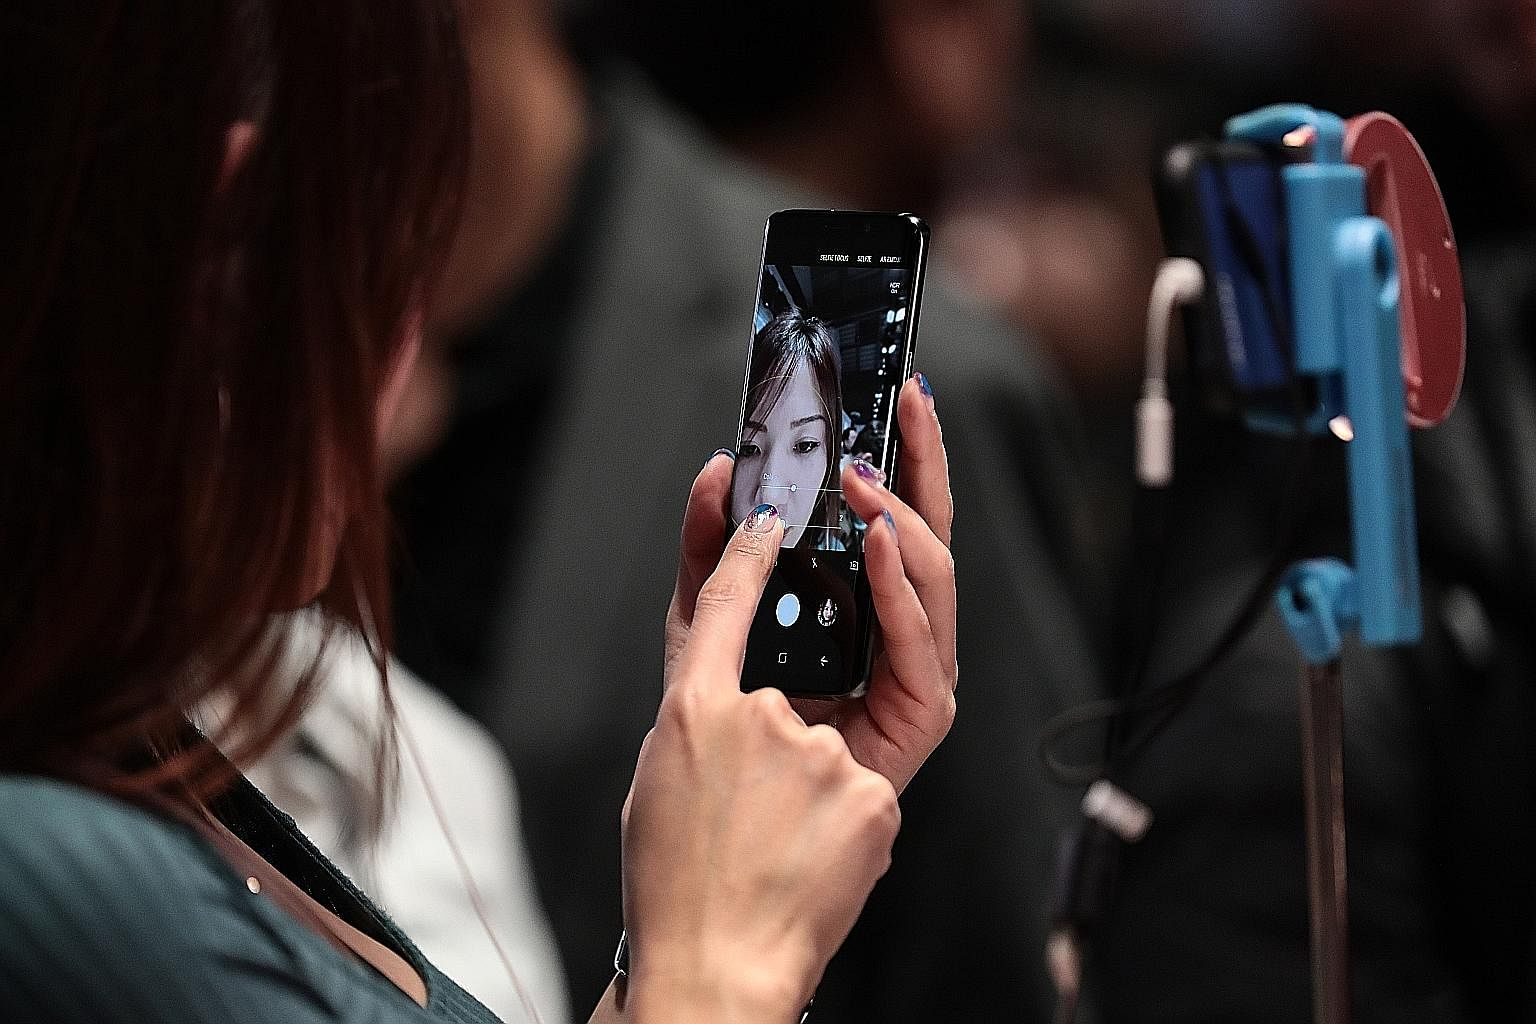 Samsung unveiled its new flagship smartphone Galaxy S9 amid much fanfare last Sunday, with a focus on augmented reality features.